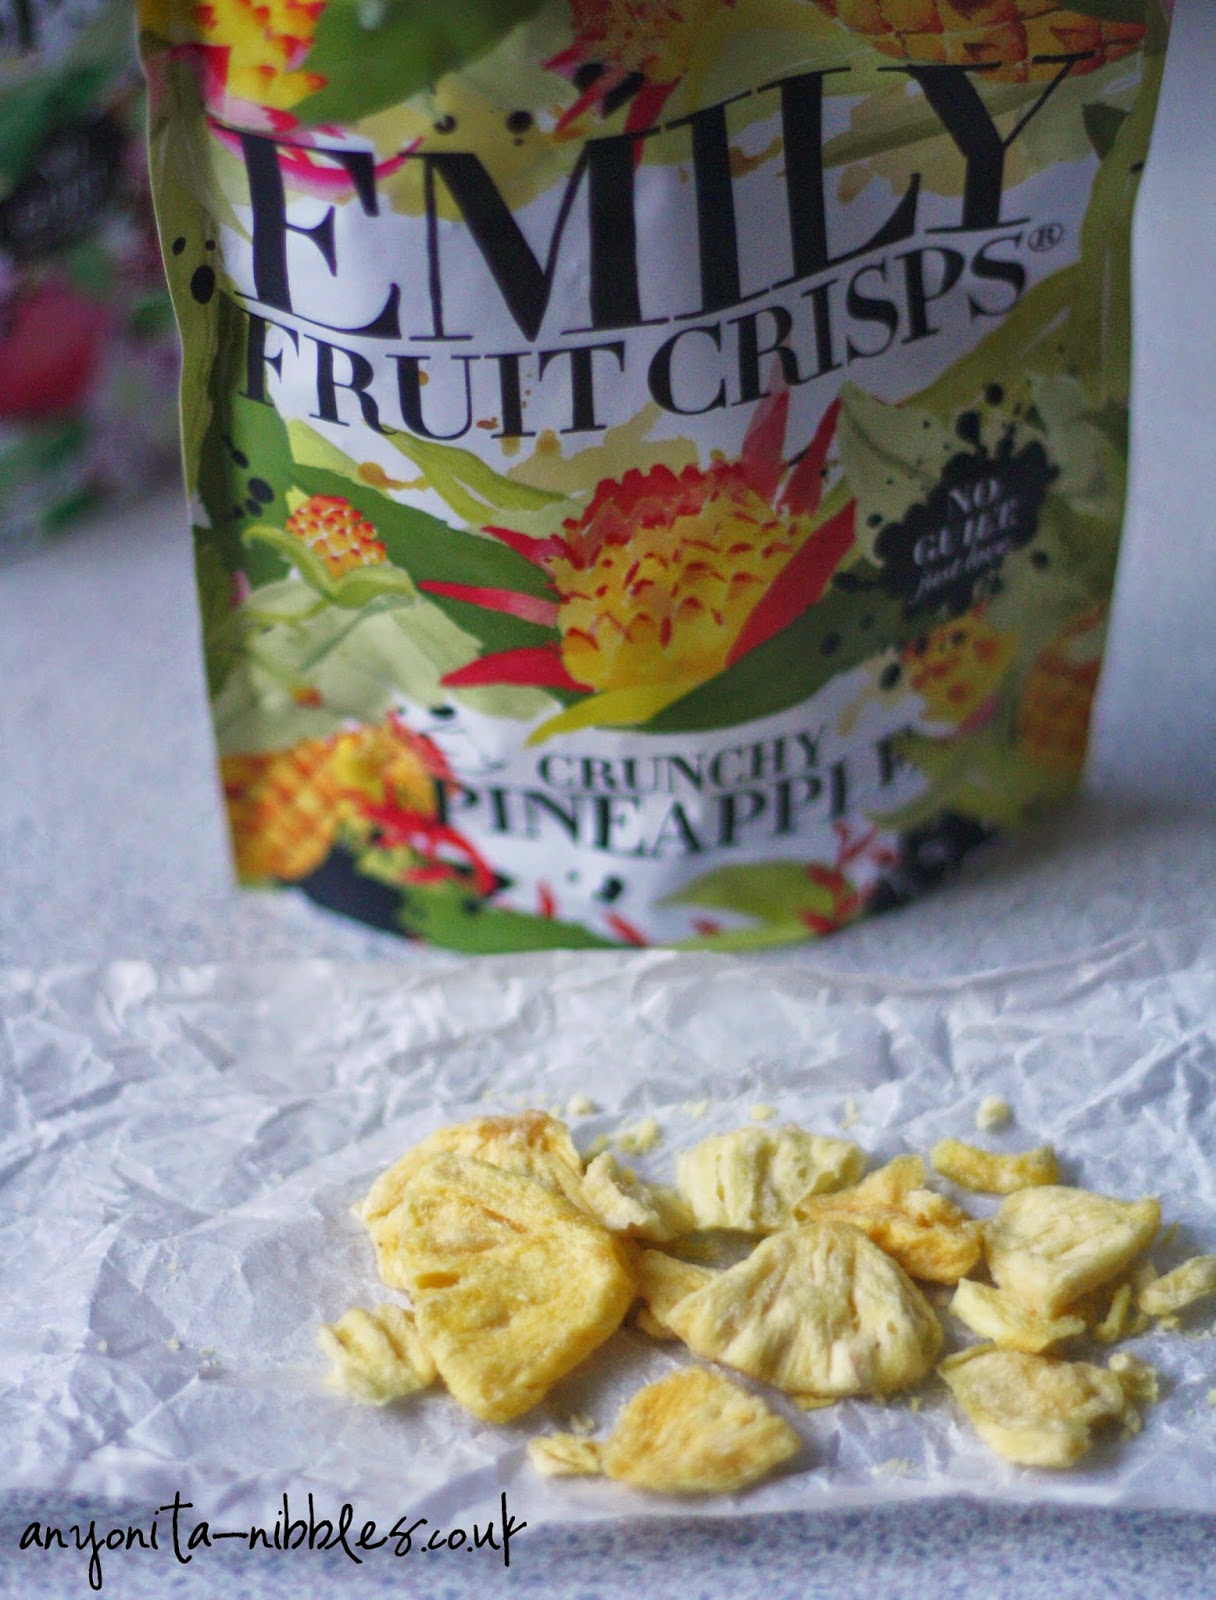 Crunchy Apple Emily Fruit Crisps by Anyonita-nibbles.co.uk